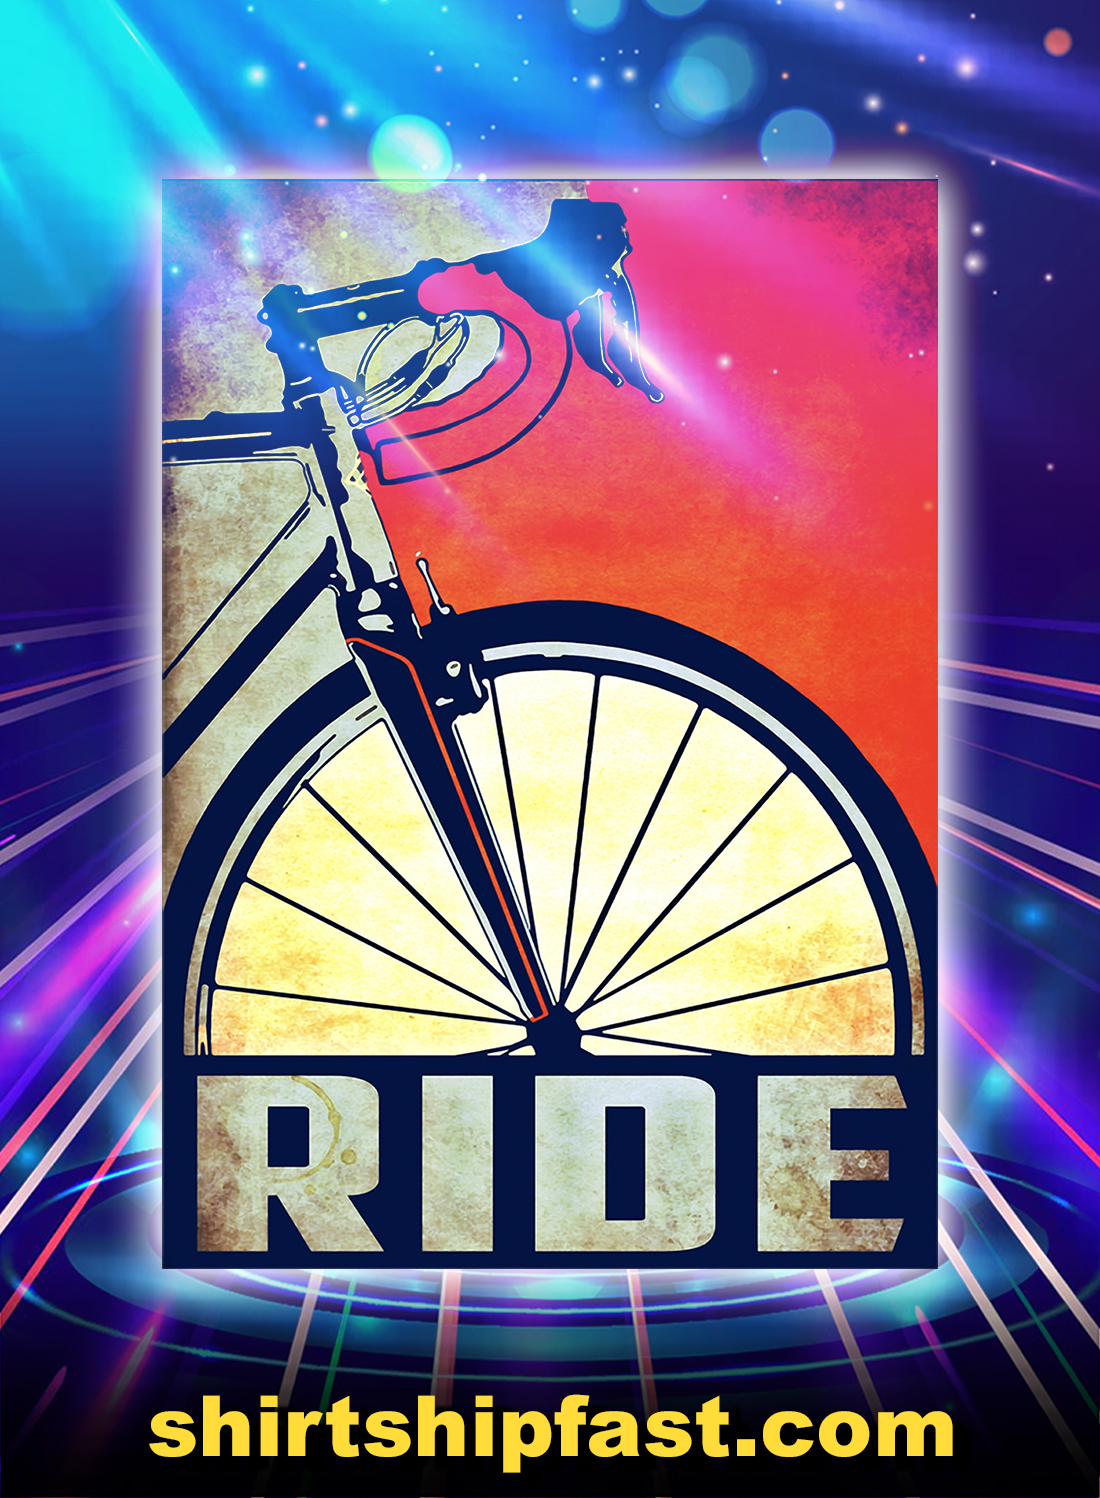 Cycling Bicycle ride poster - A4